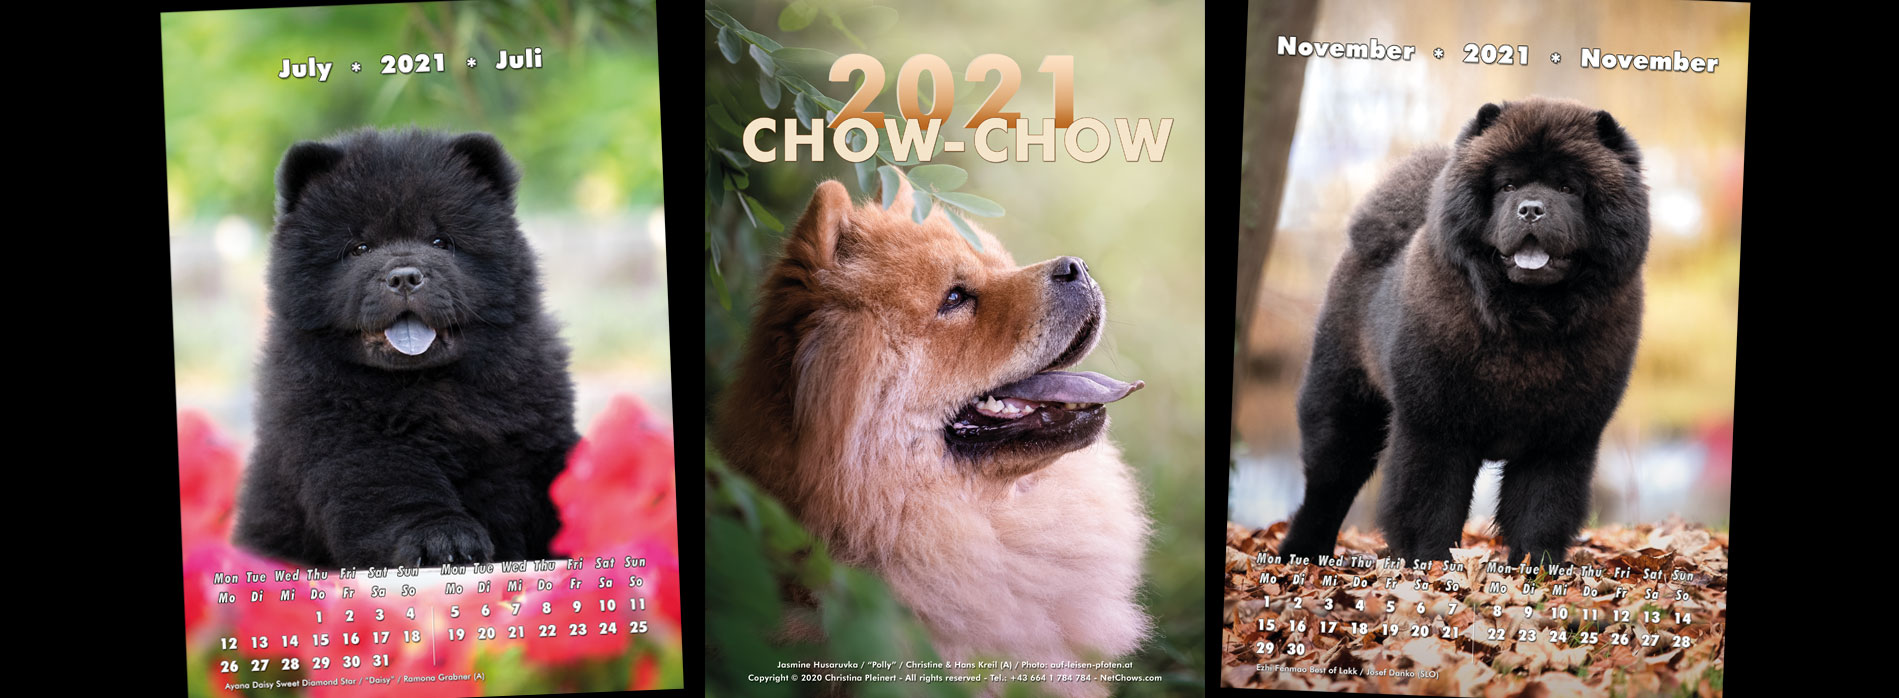 NetChows is proud to present the Chow-Chow Calendar 2020